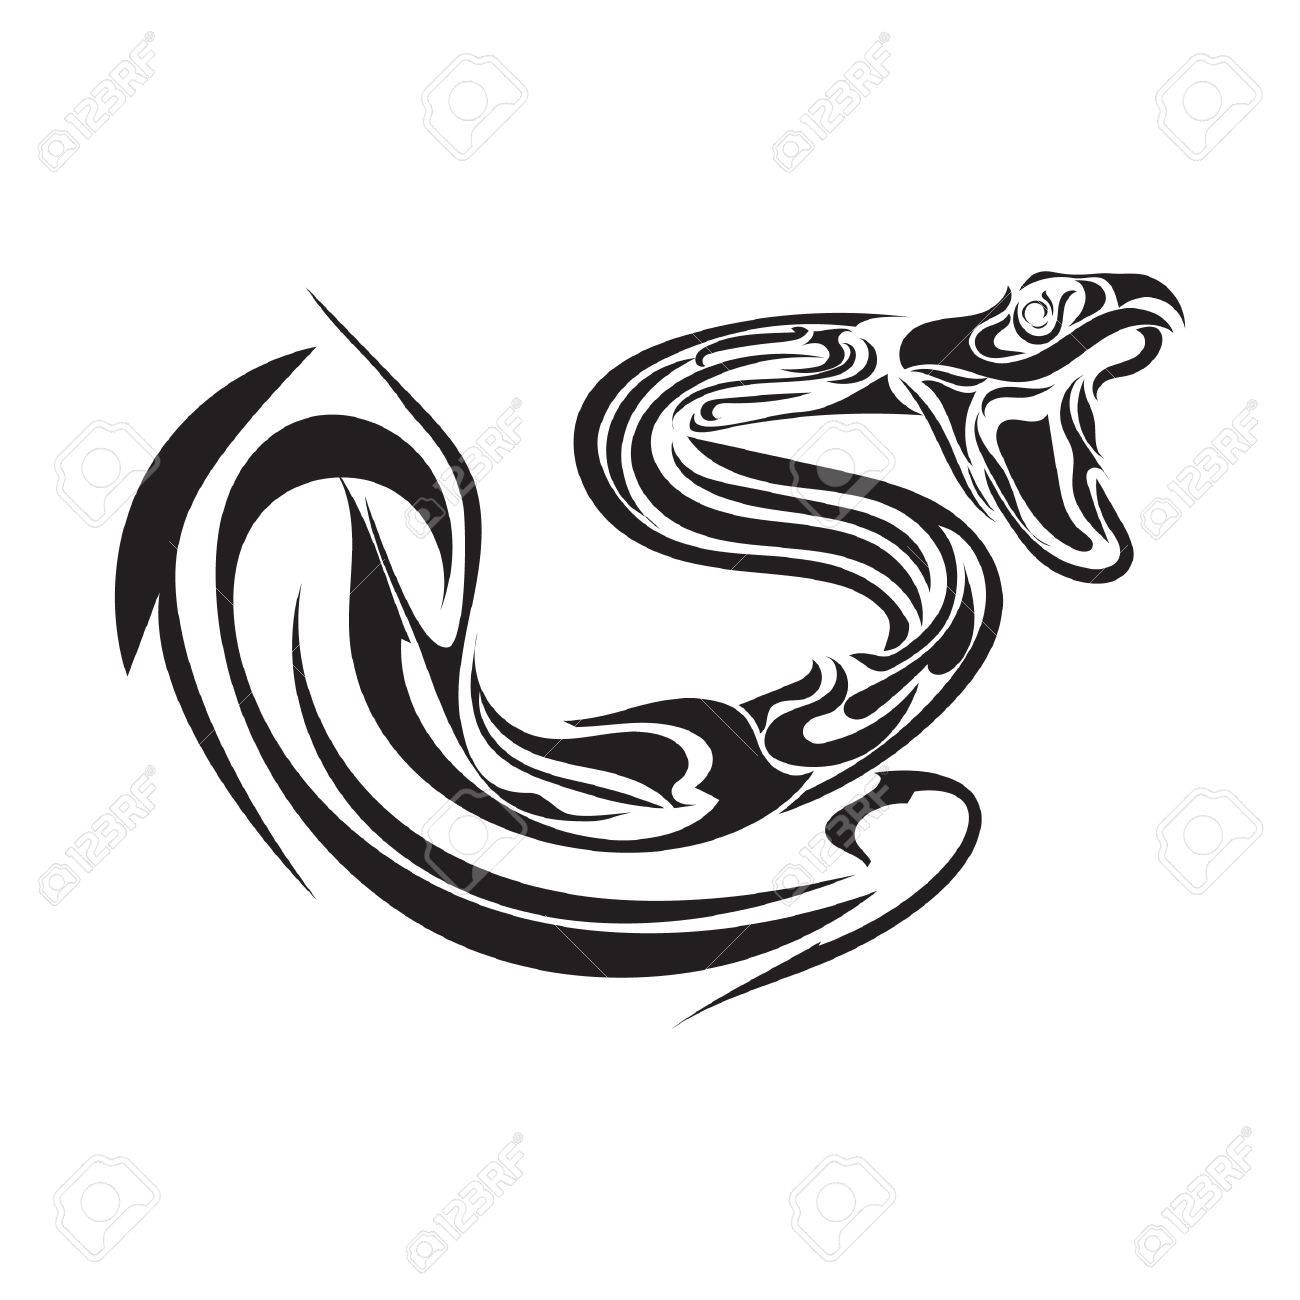 7c8a0ff0740b2 Snake Tattoo Design Royalty Free Cliparts, Vectors, And Stock ...